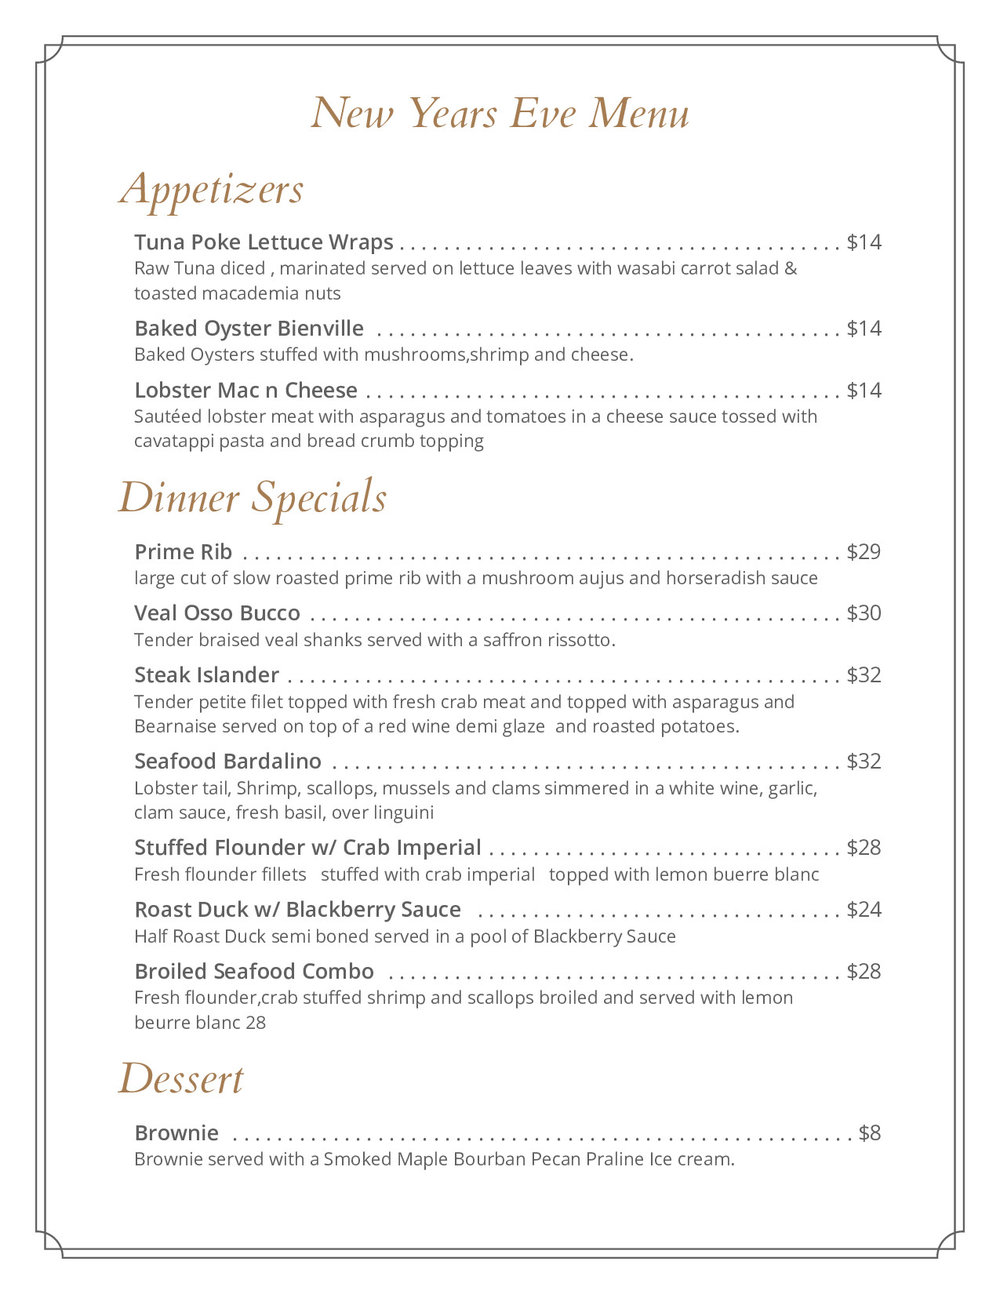 New years Eve Menu 12-31.jpg